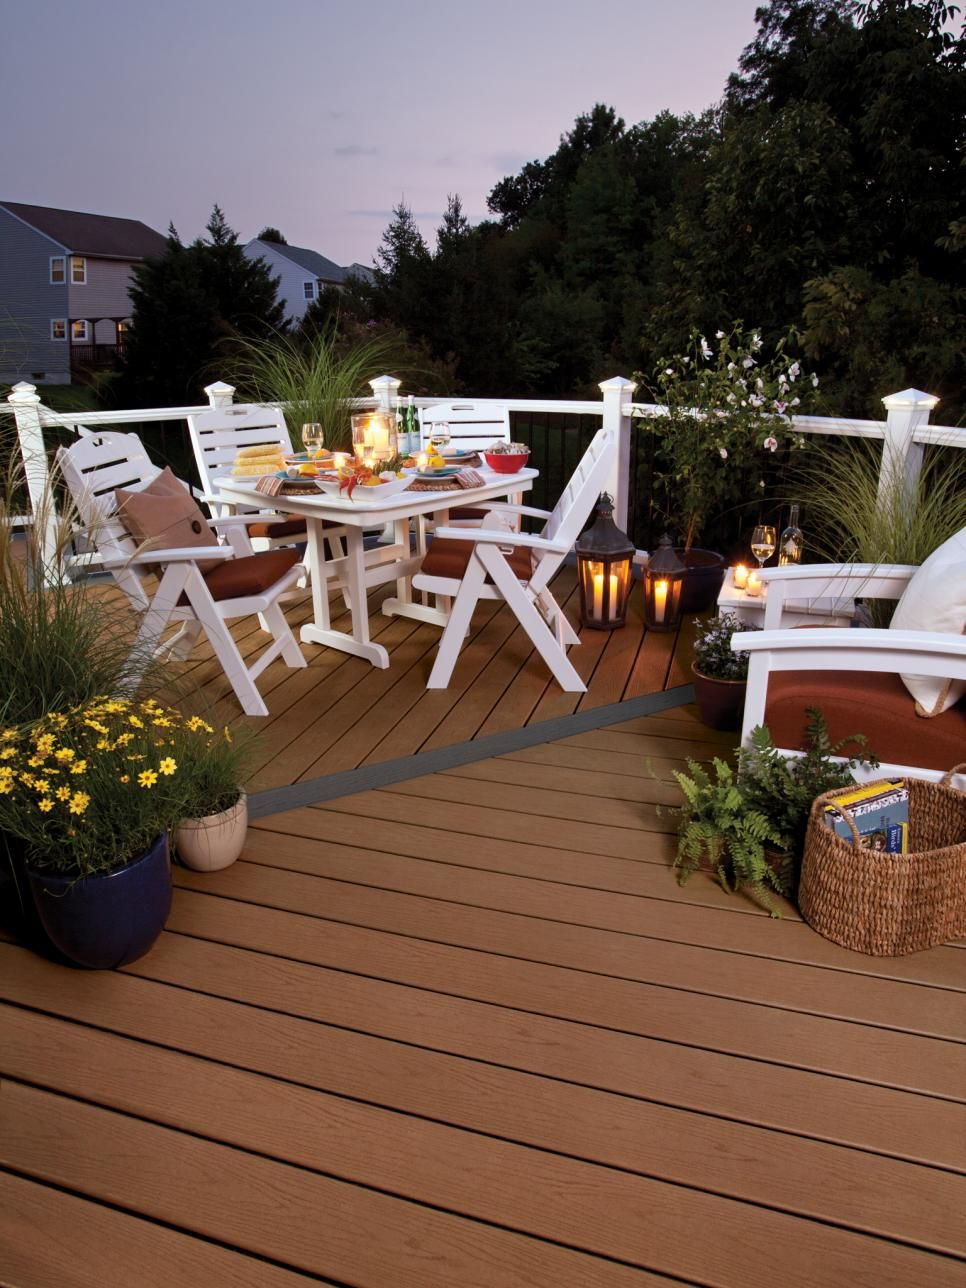 A Small White Wood Table And Chairs Create An Intimate Dining Area On This Wood Deck White Furnishings Paired With Green Plants So In 2020 Building A Deck Diy Deck Deck Cost